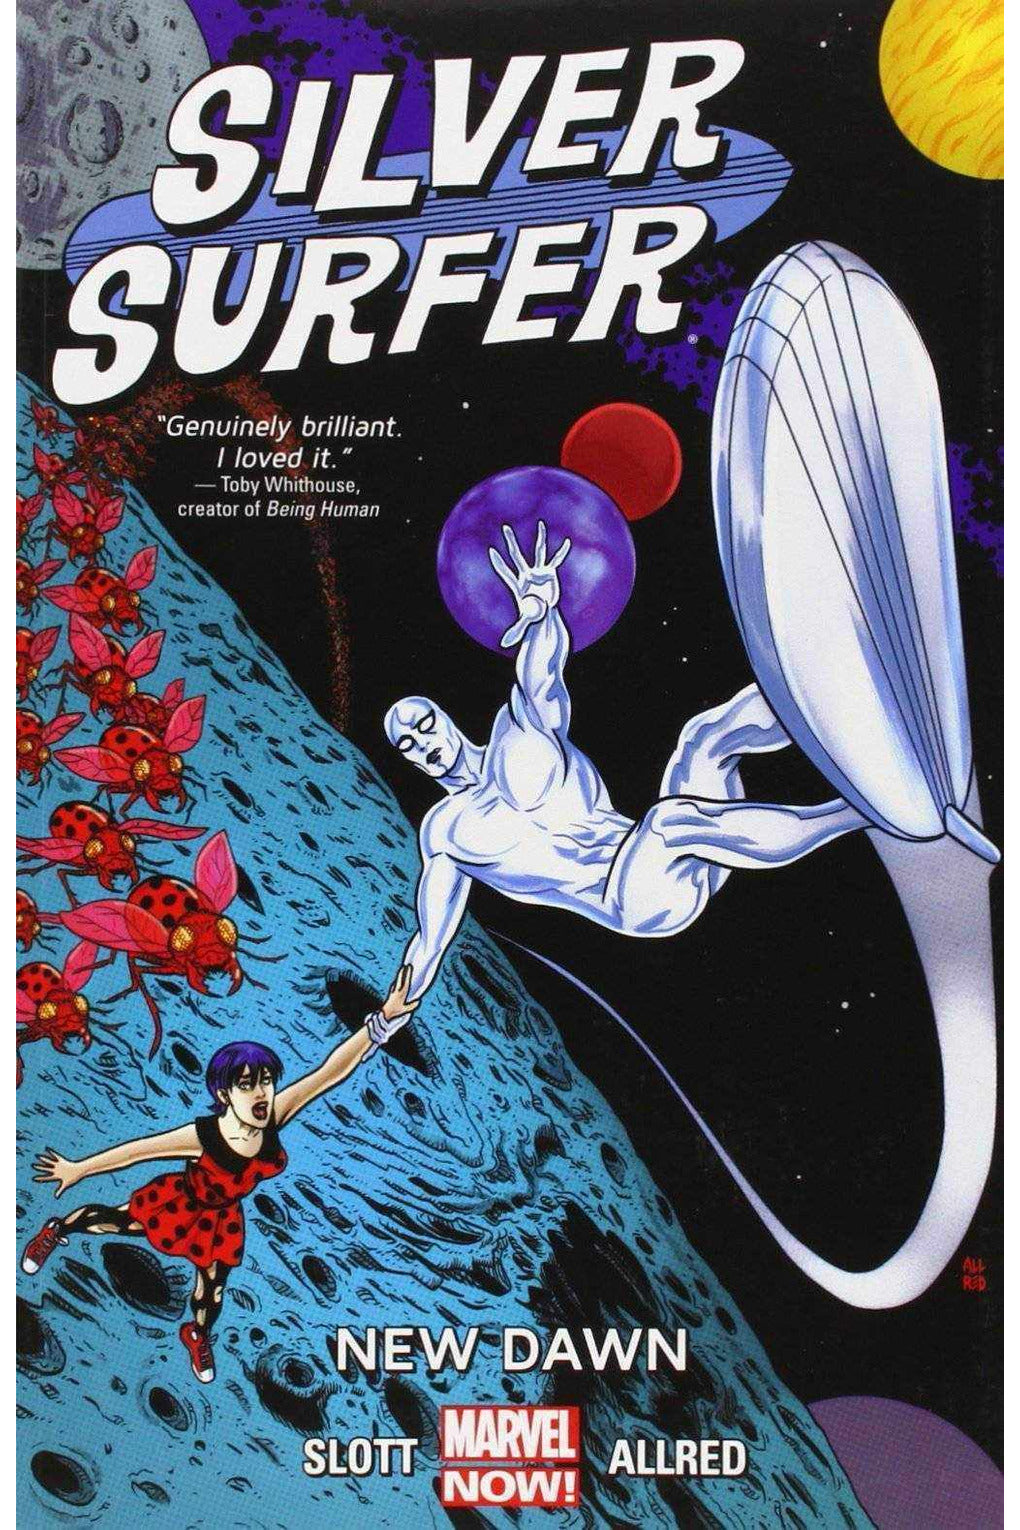 silver-surfer-vol-1-diamond-9780785188780-thegamersden.com